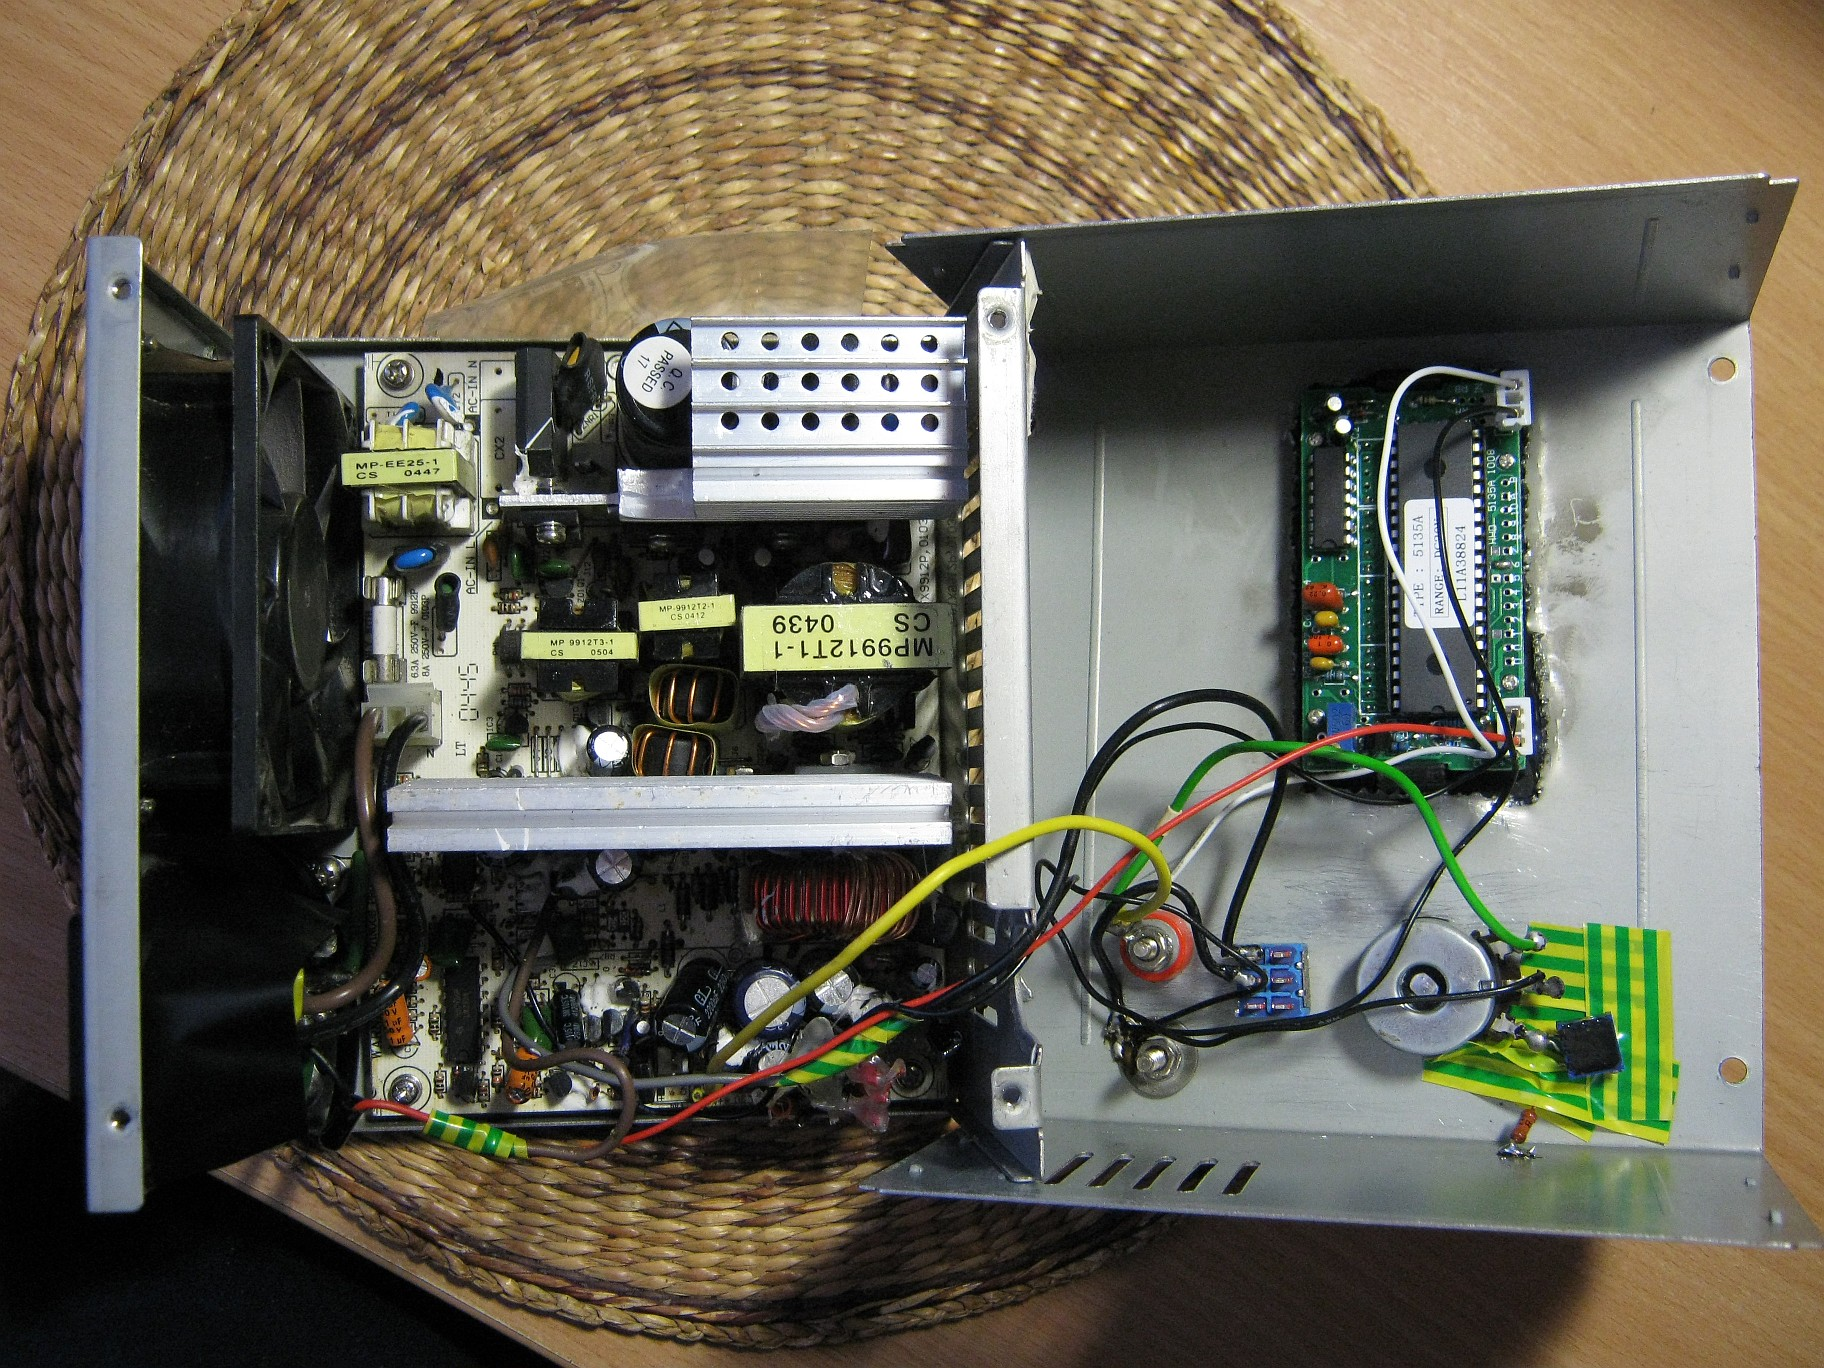 Fully Regulated Atx Power Supply Bogin Jr For A 10k Potentiometer Wiring Diagrams Conversion Inside View